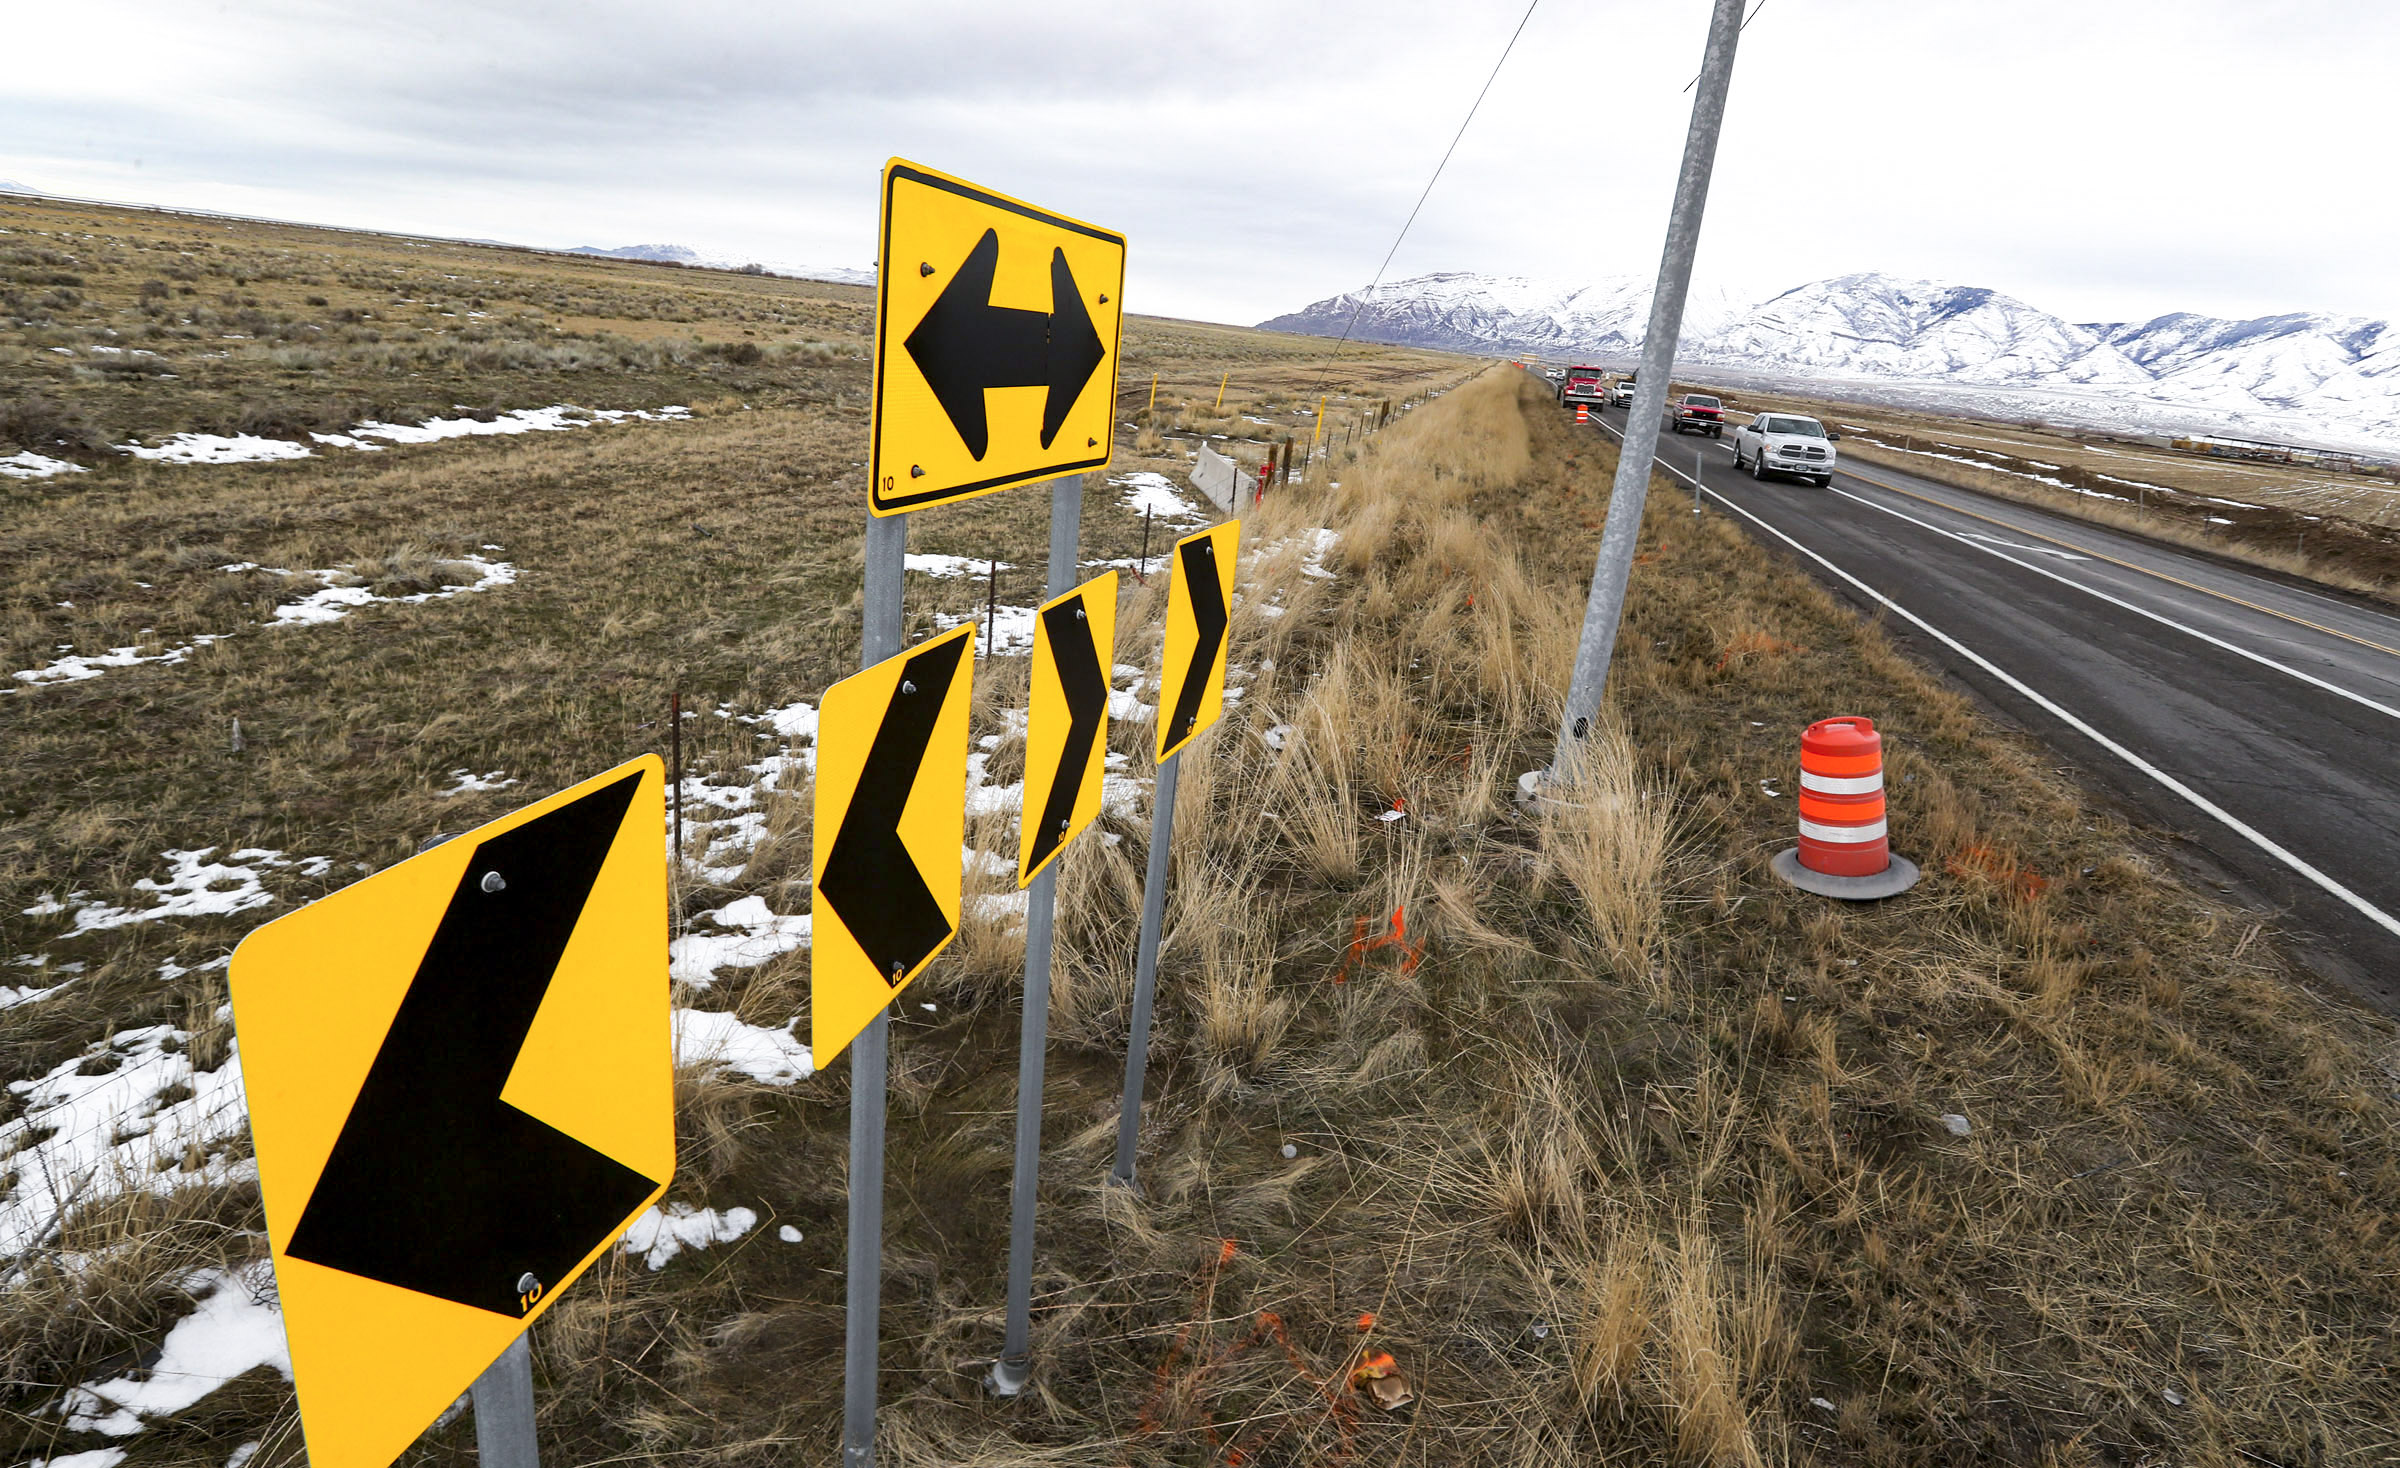 """The intersection at Sheep Lane and state Route 138 in Erda, Tooele County, is pictured on Friday, Feb. 7, 2020. Tooele County leaders and developers have put together a proposal for a """"central hub"""" or satellite location Utah Inland Port, but port authority leaders and state leaders say it's way too early to decide whether it's viable."""